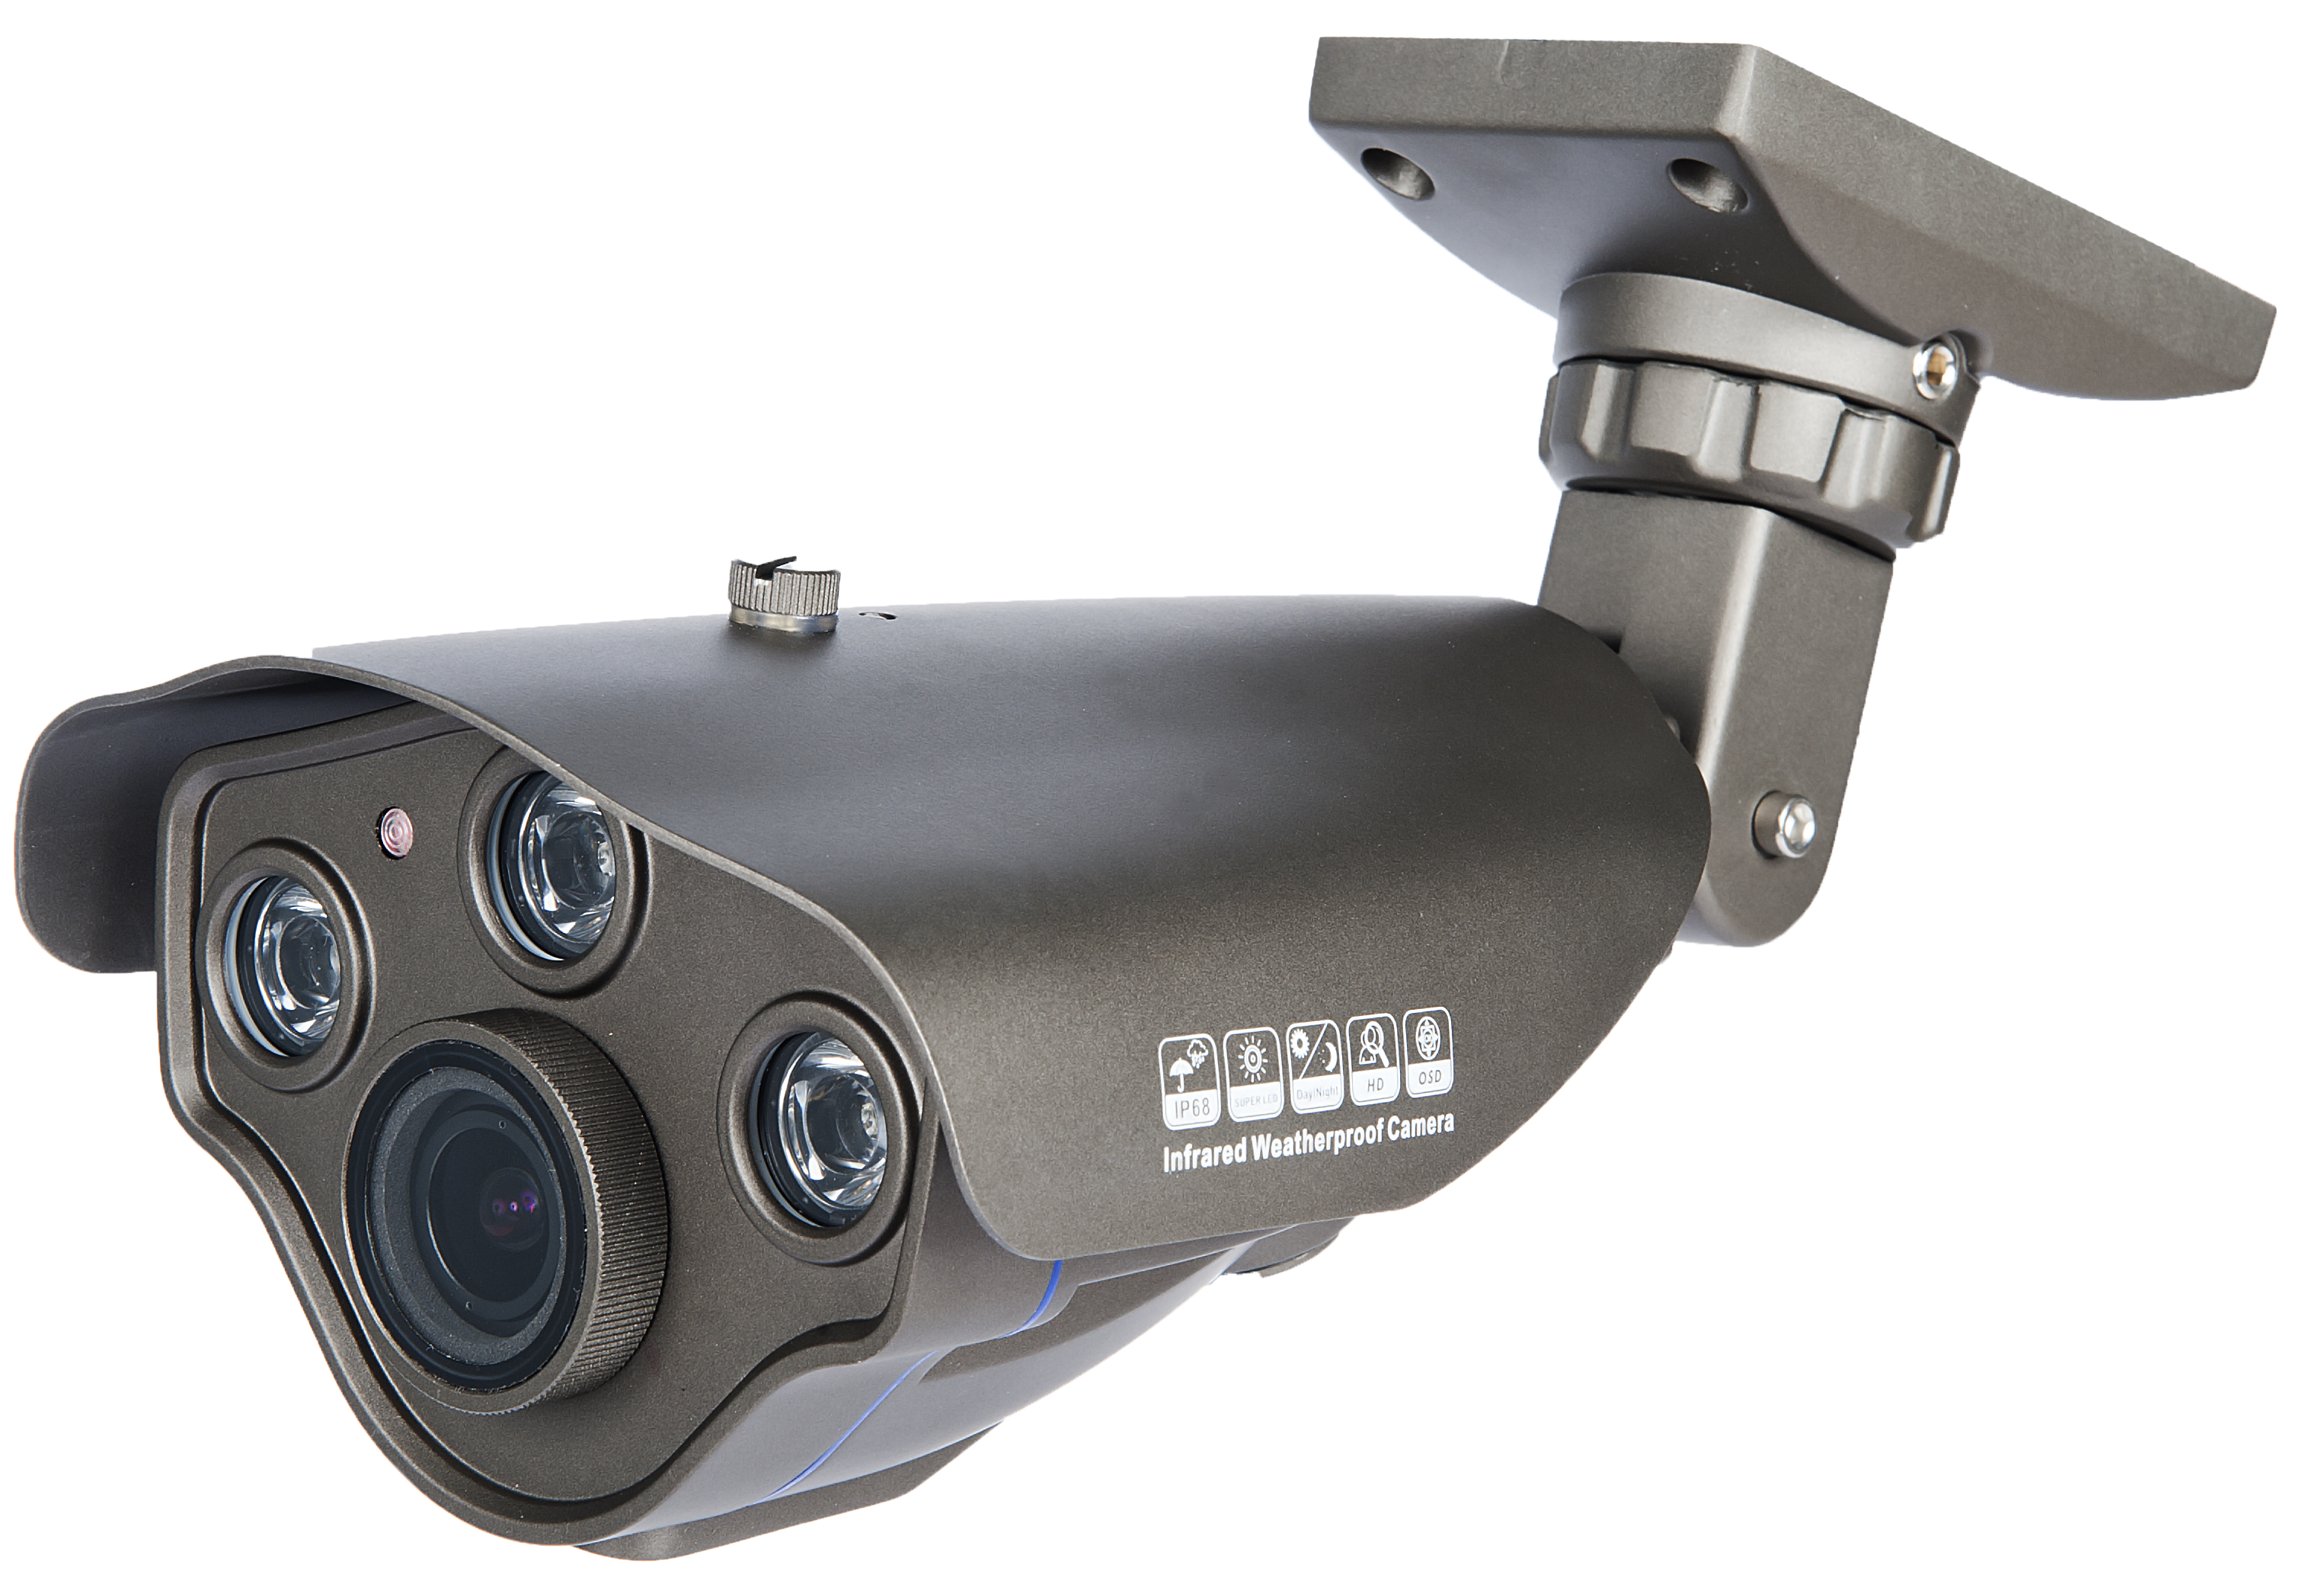 Ascendent High Definition Infrared Bullet Camera Sr 90